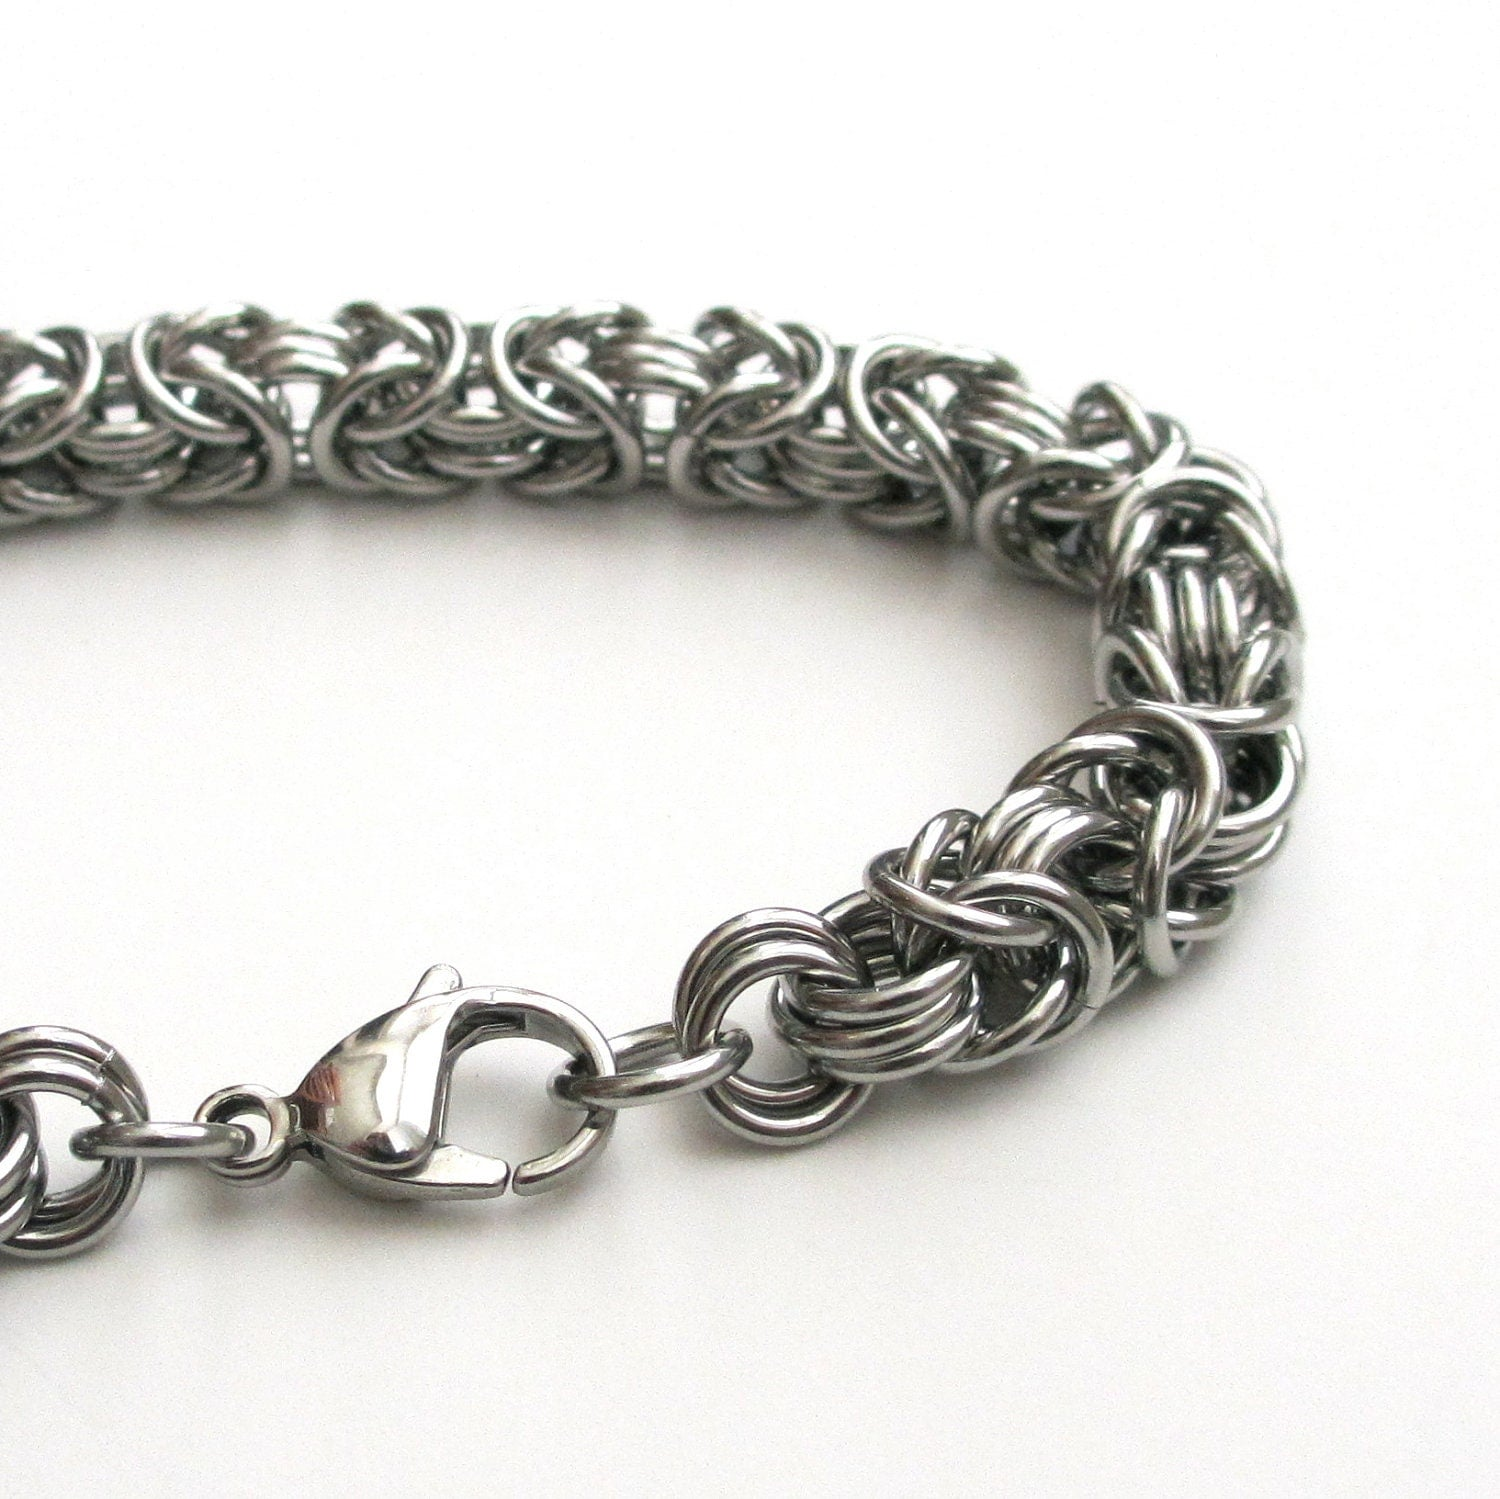 Make A Chain Mail Bracelet: Stainless Steel Chainmail Bracelet For Men Byzantine Weave